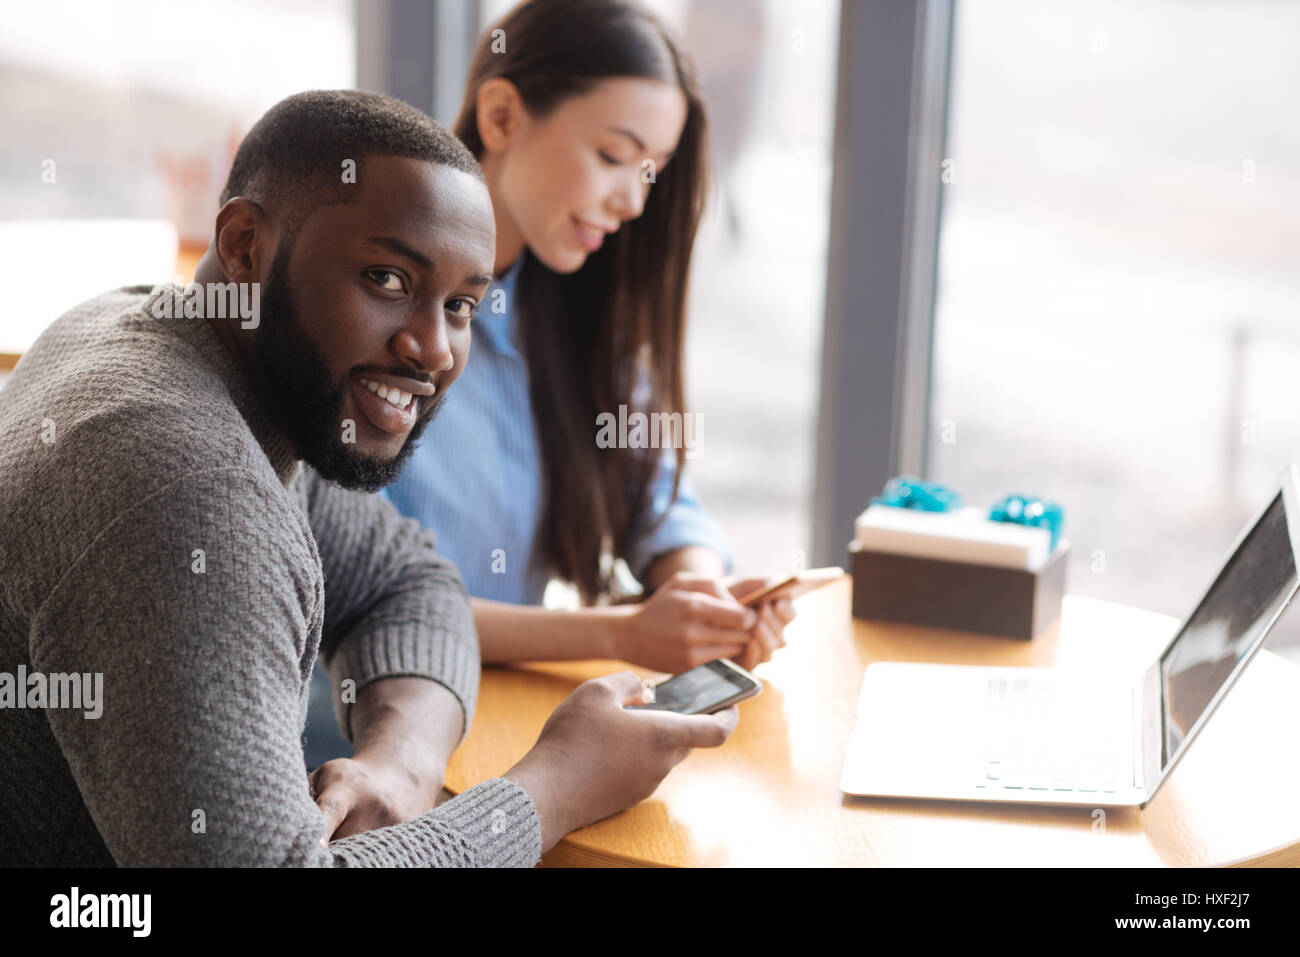 Young man and woman using smartphones at cafe - Stock Image